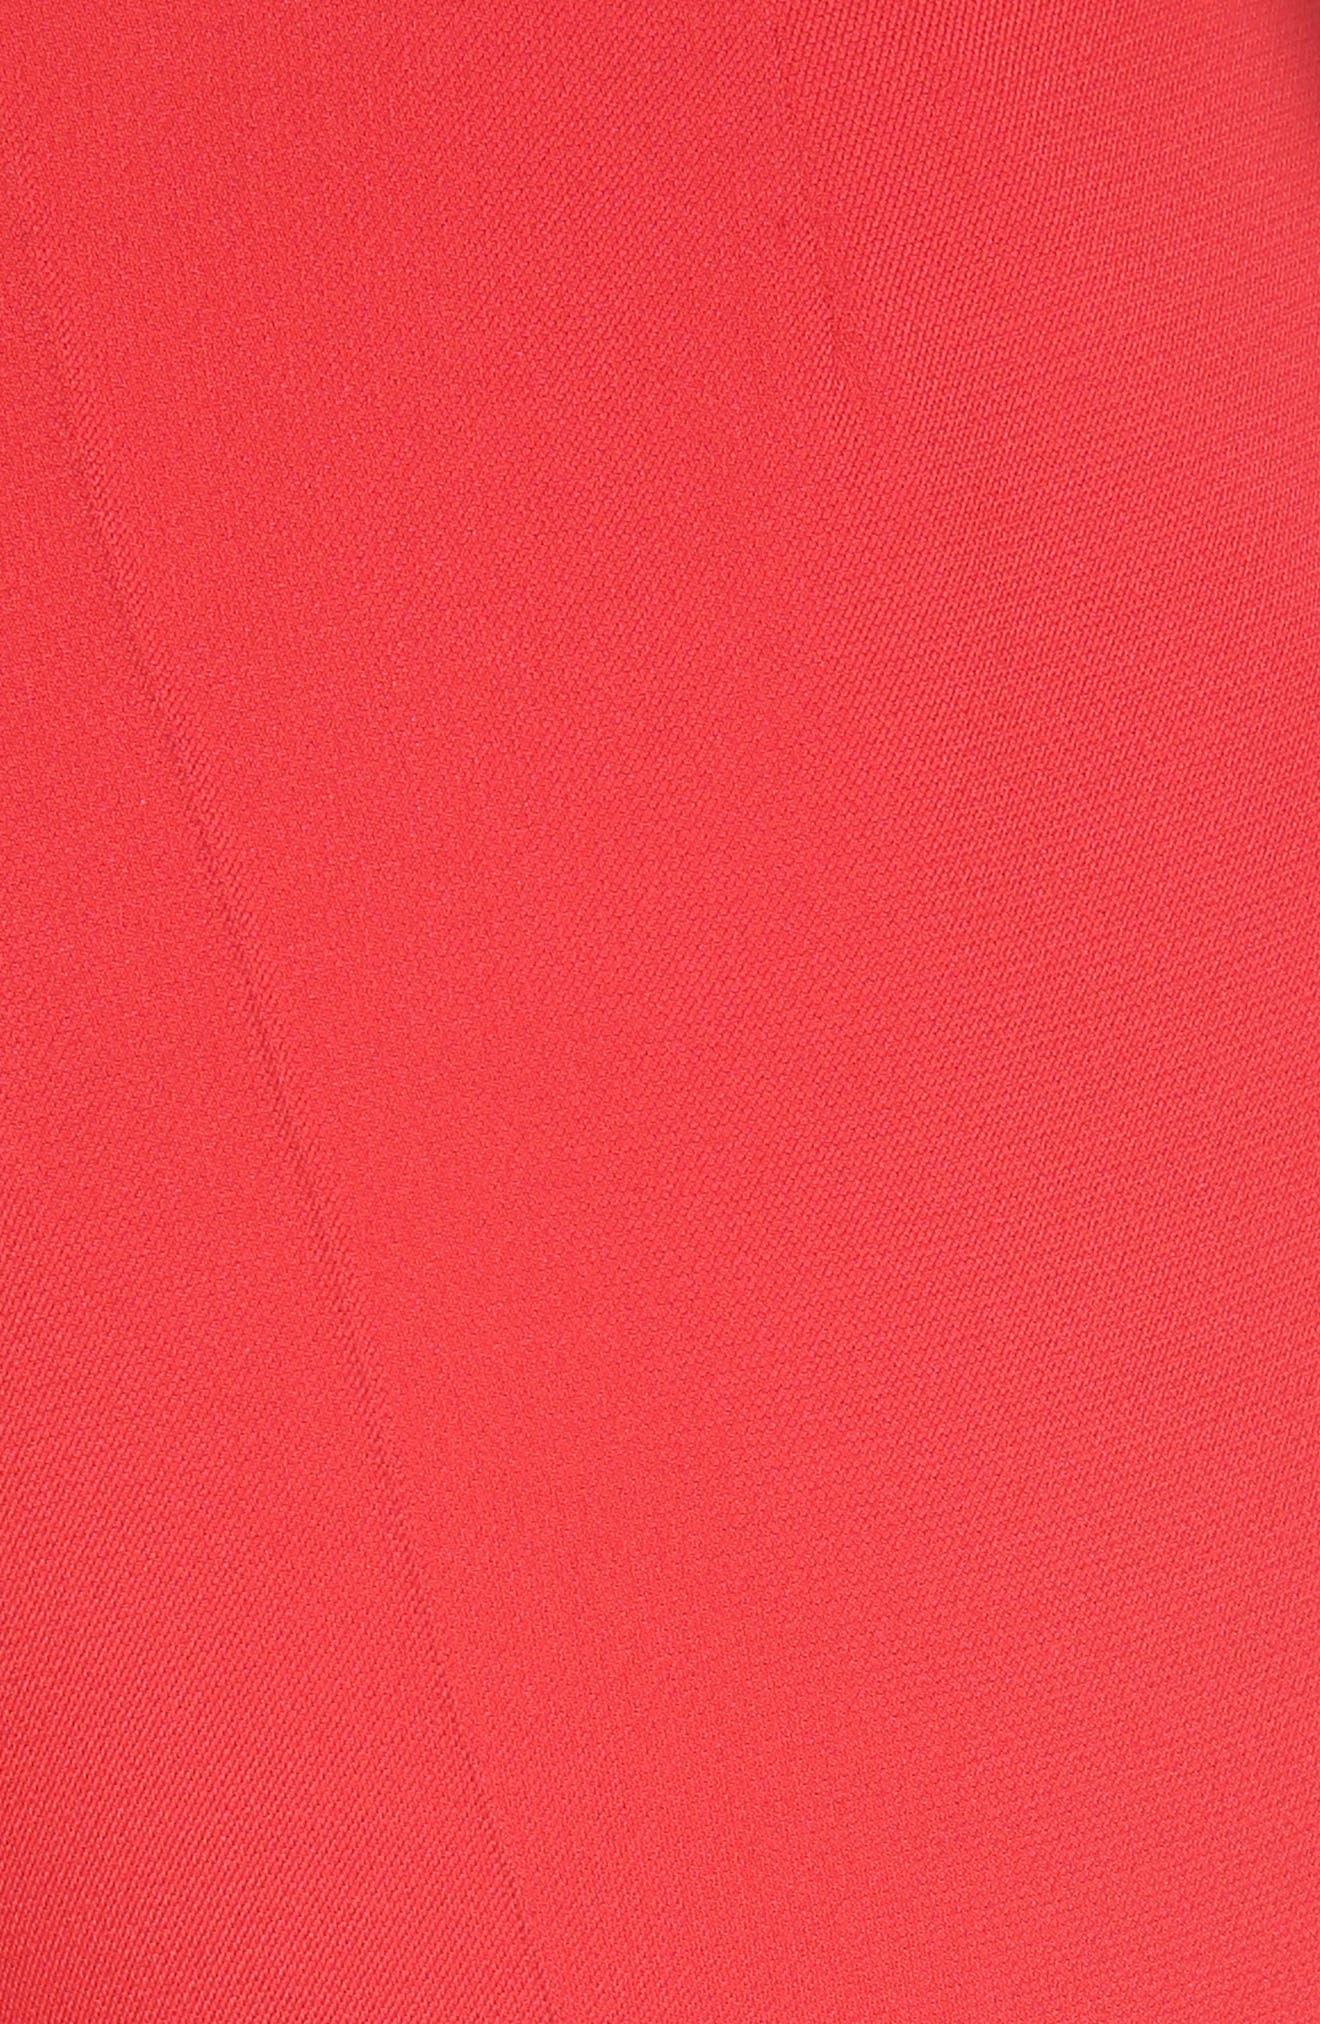 Cady Flare Suiting Pants,                             Alternate thumbnail 5, color,                             Ginger Red